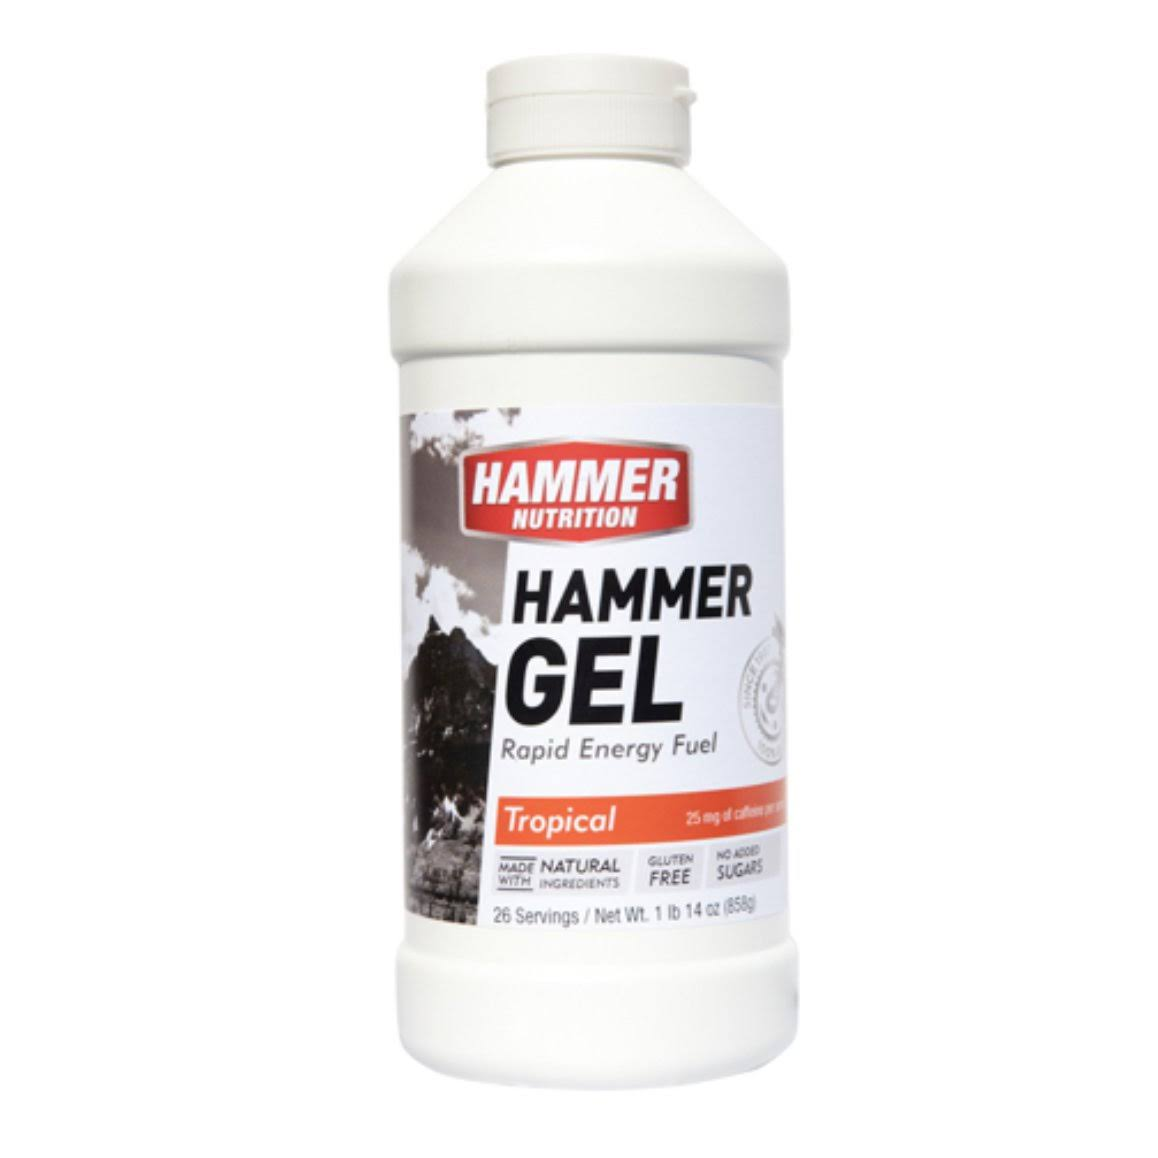 Hammer Nutrition Gel - Tropical, 645ml